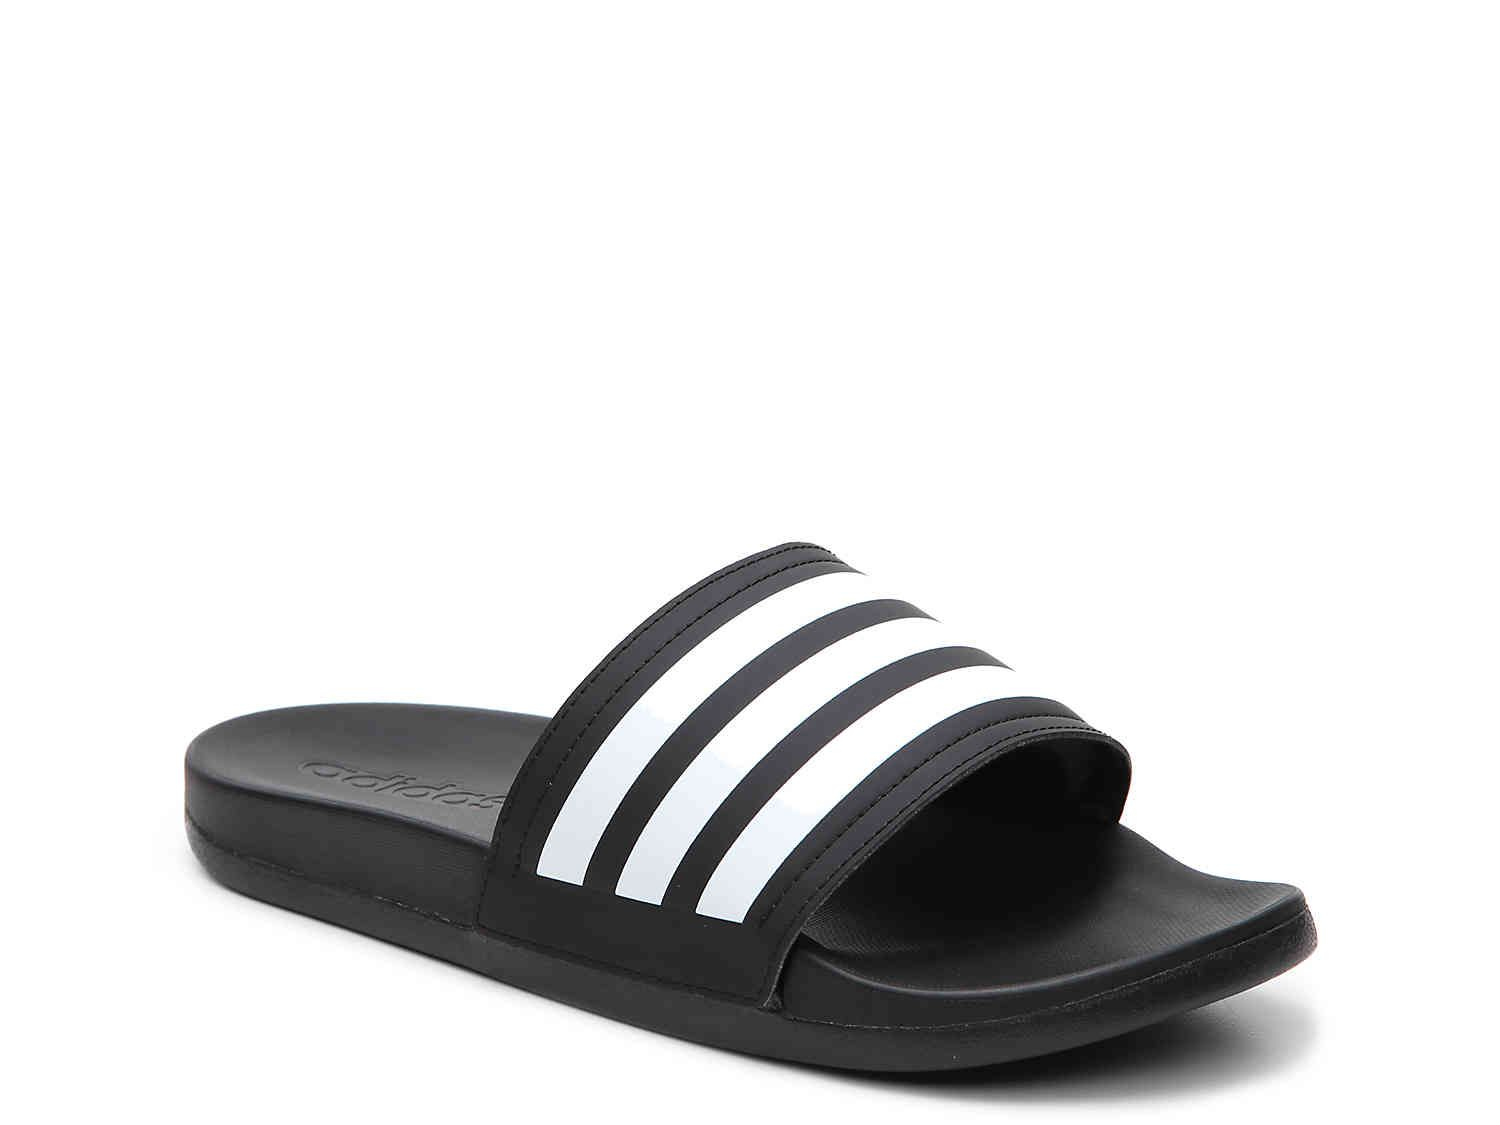 Adilette Cloudfoam Ultra Stripes Slide Sandal